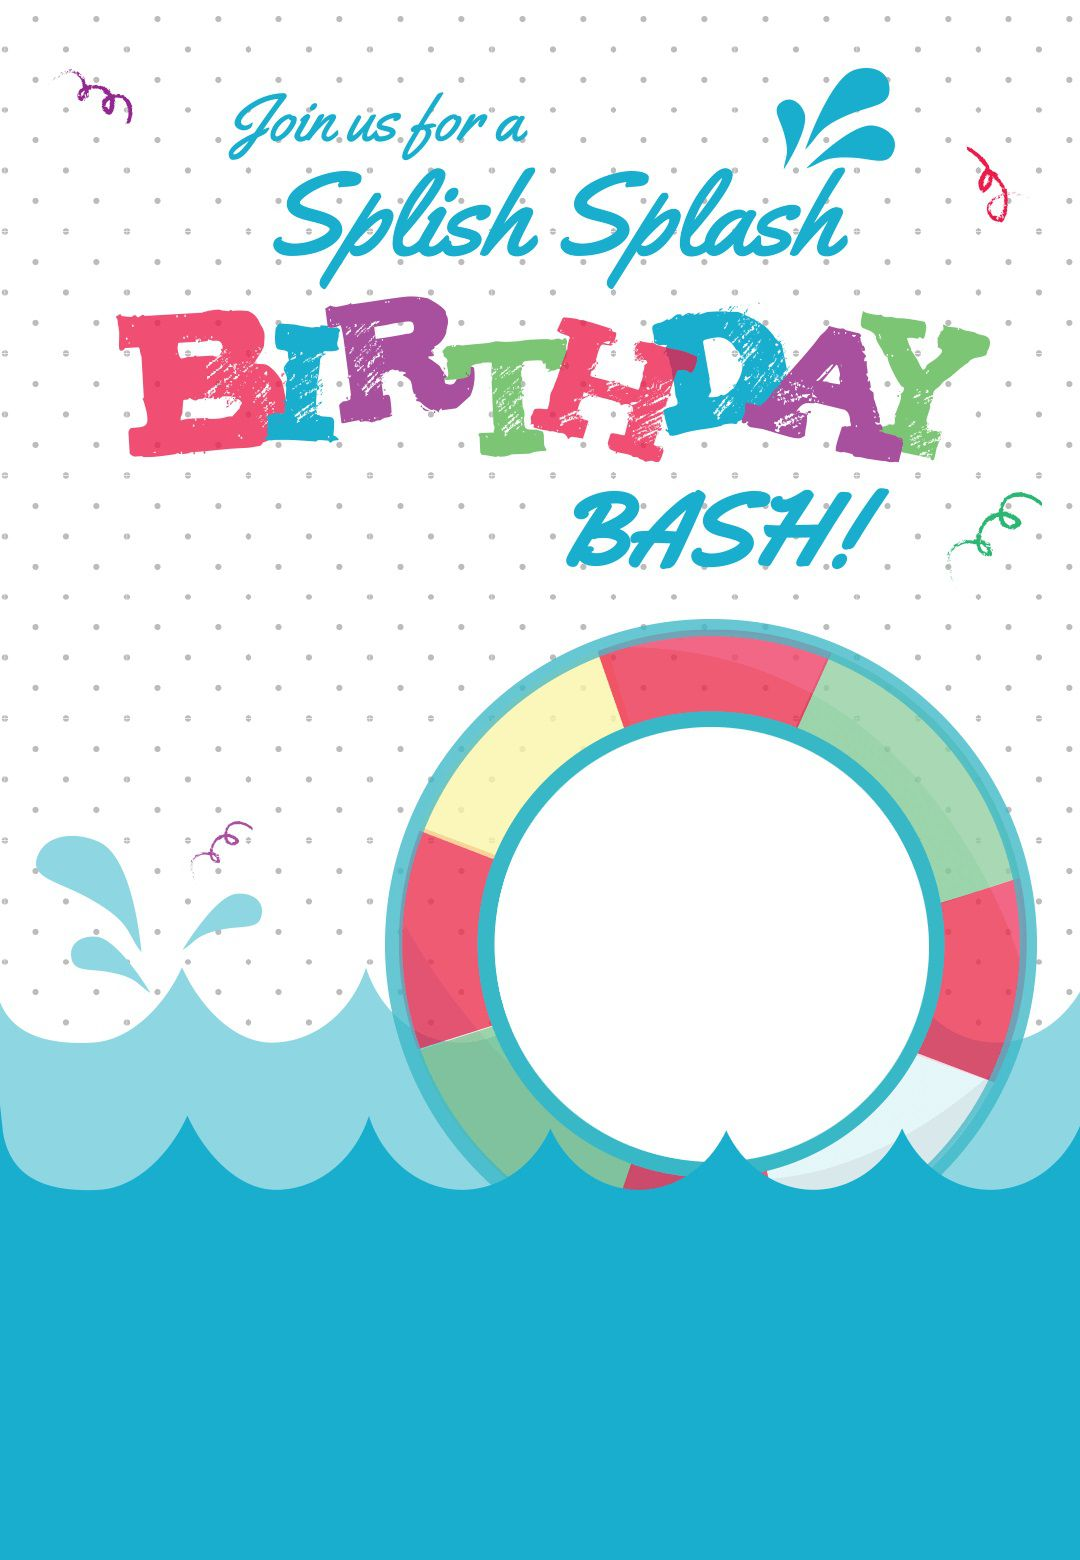 005 Fantastic Pool Party Invitation Template Free High Definition  Downloadable Printable SwimmingFull